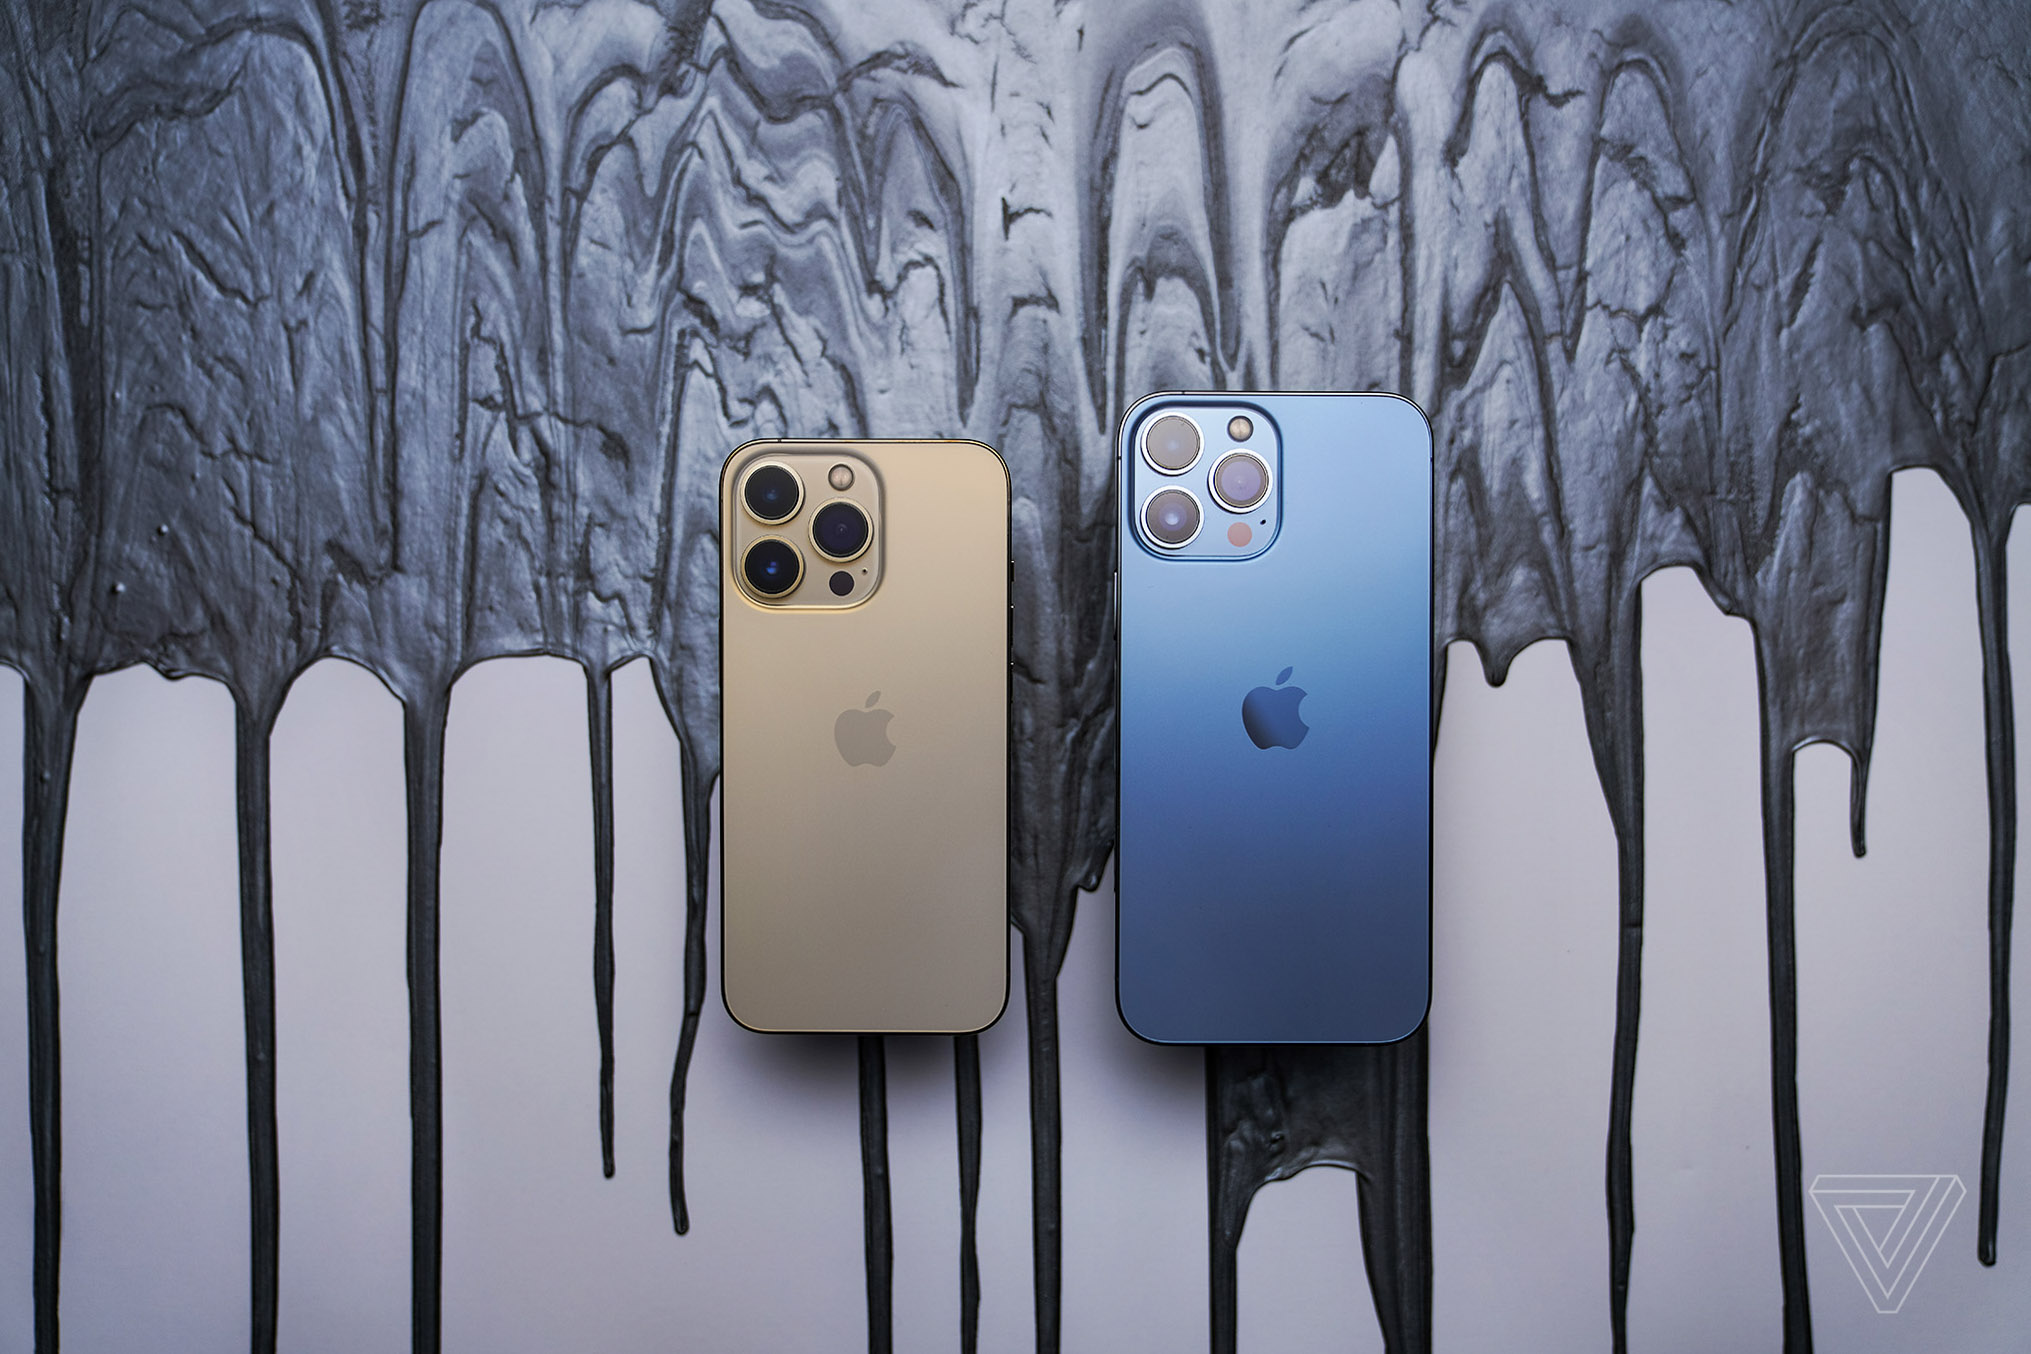 The iPhone 13 Pro (left) and Pro Max (right)